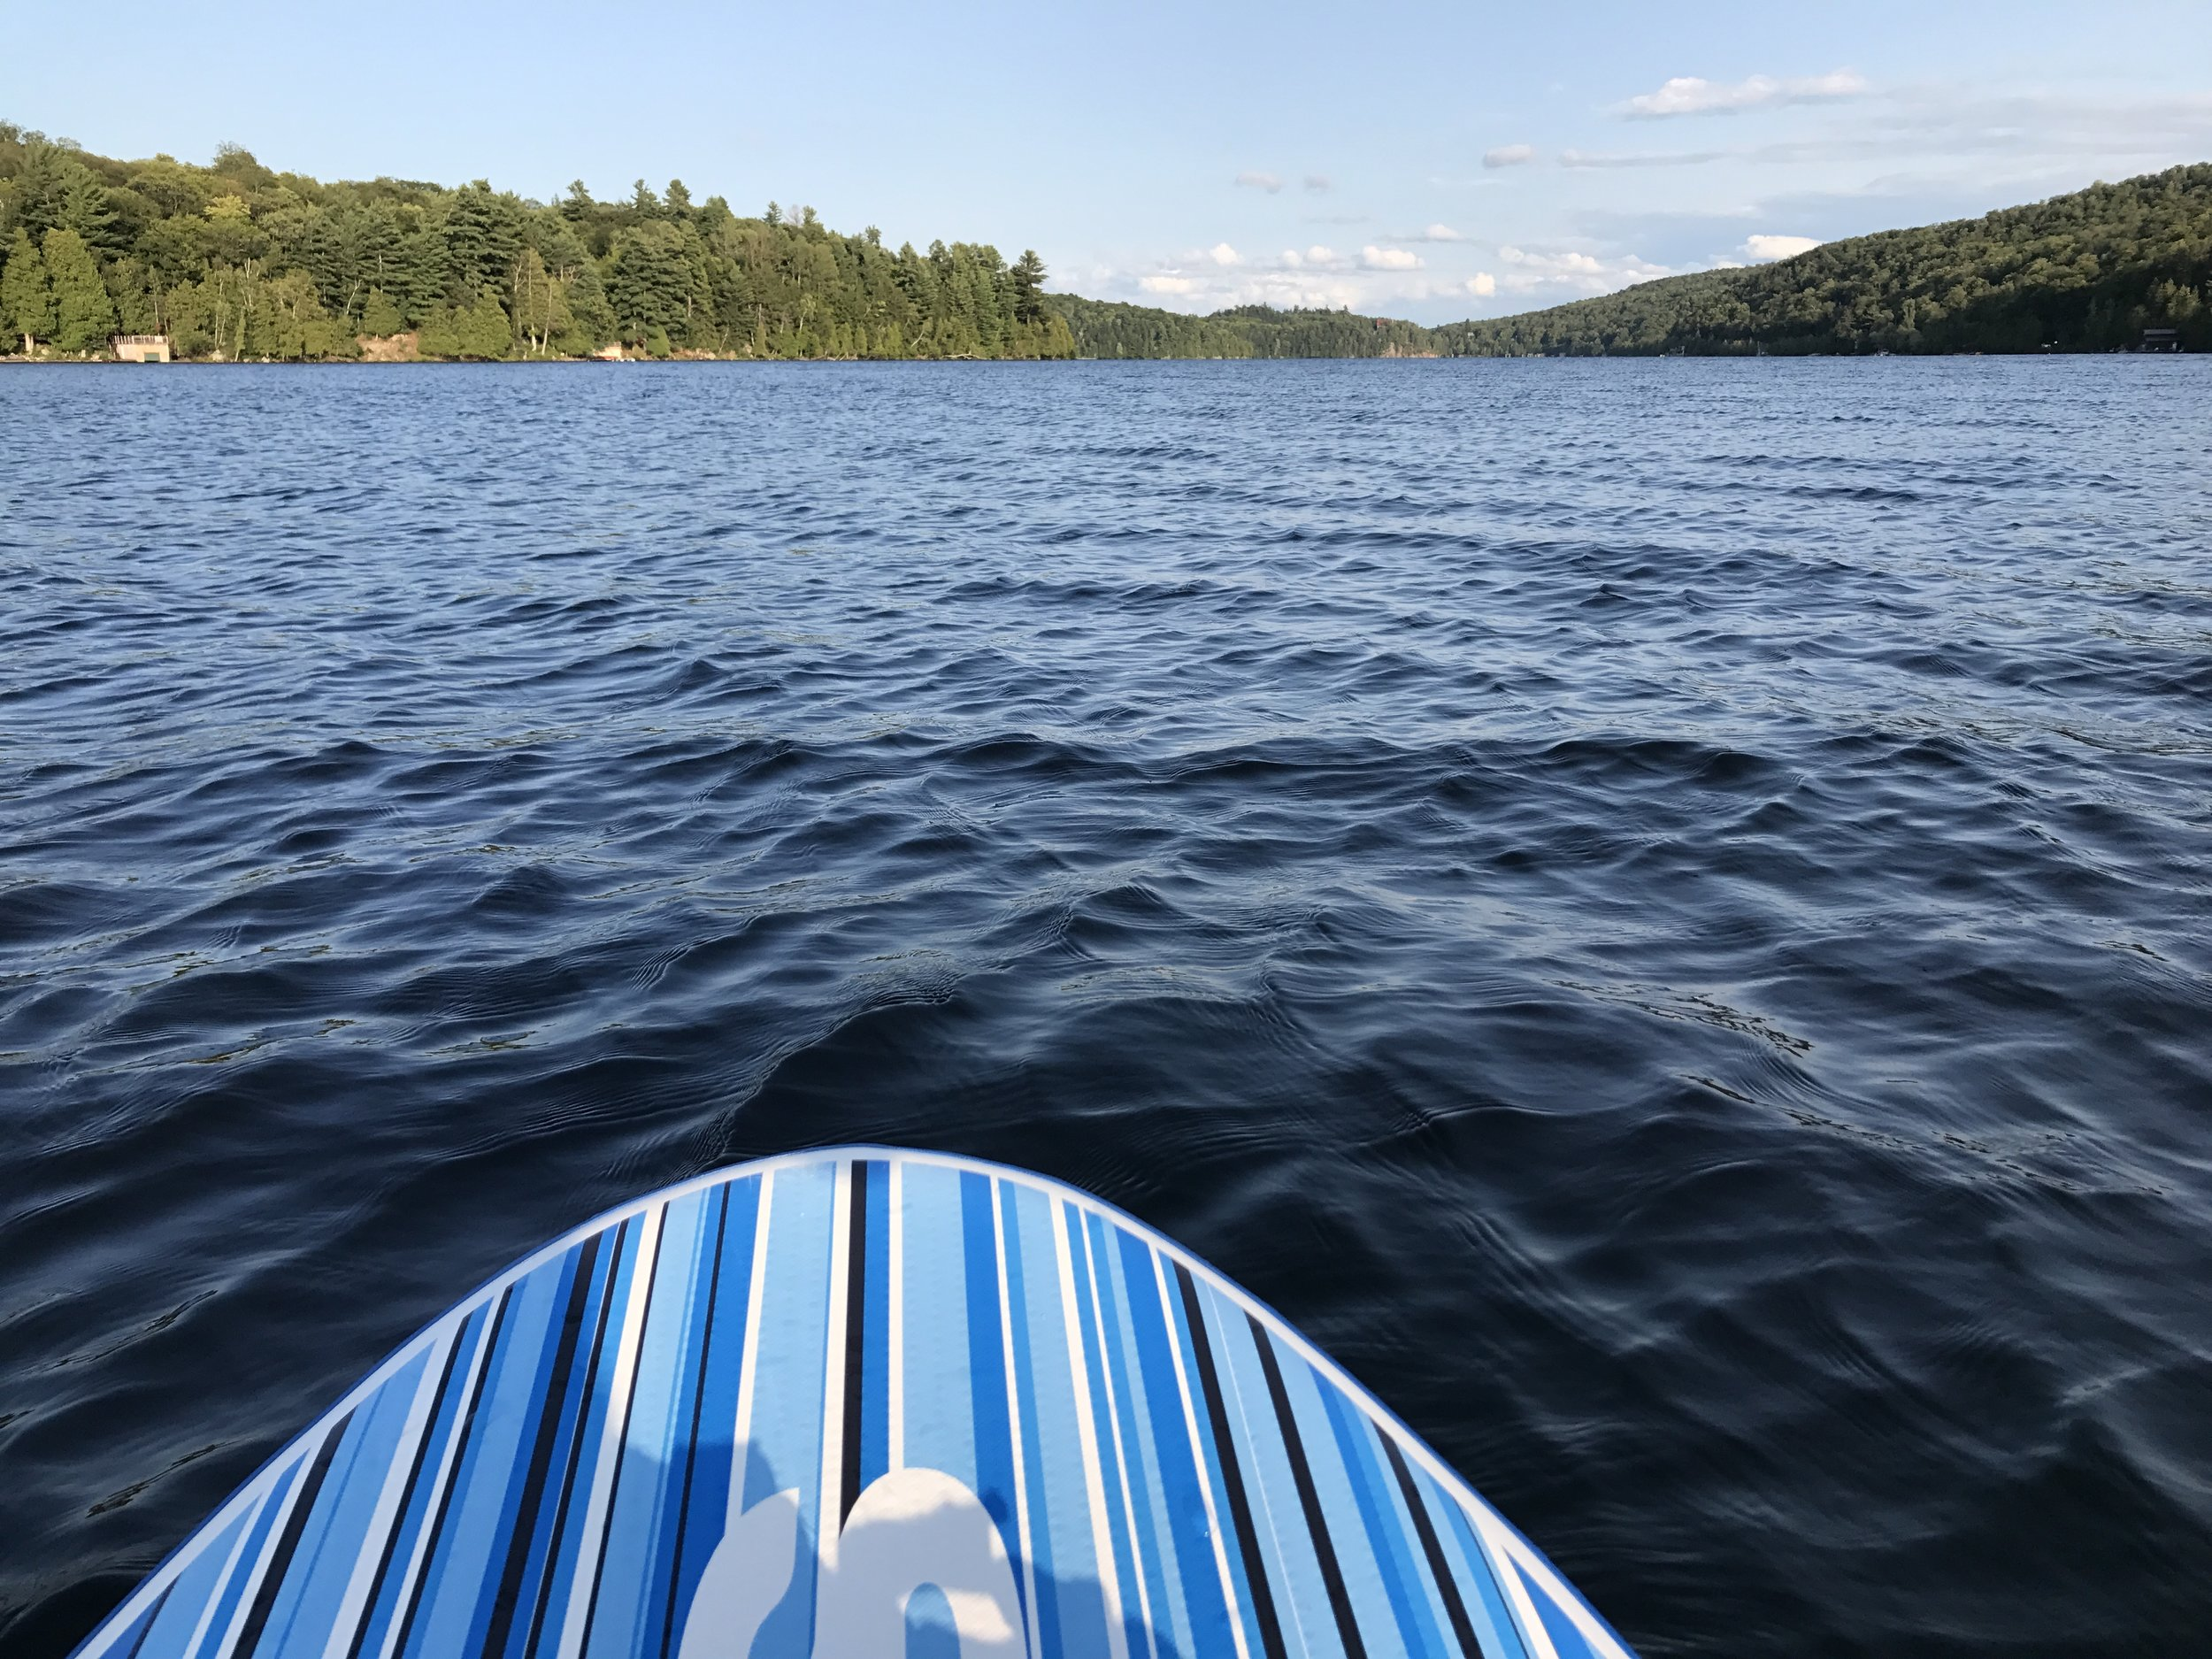 Out for a paddle on Meech Lake.